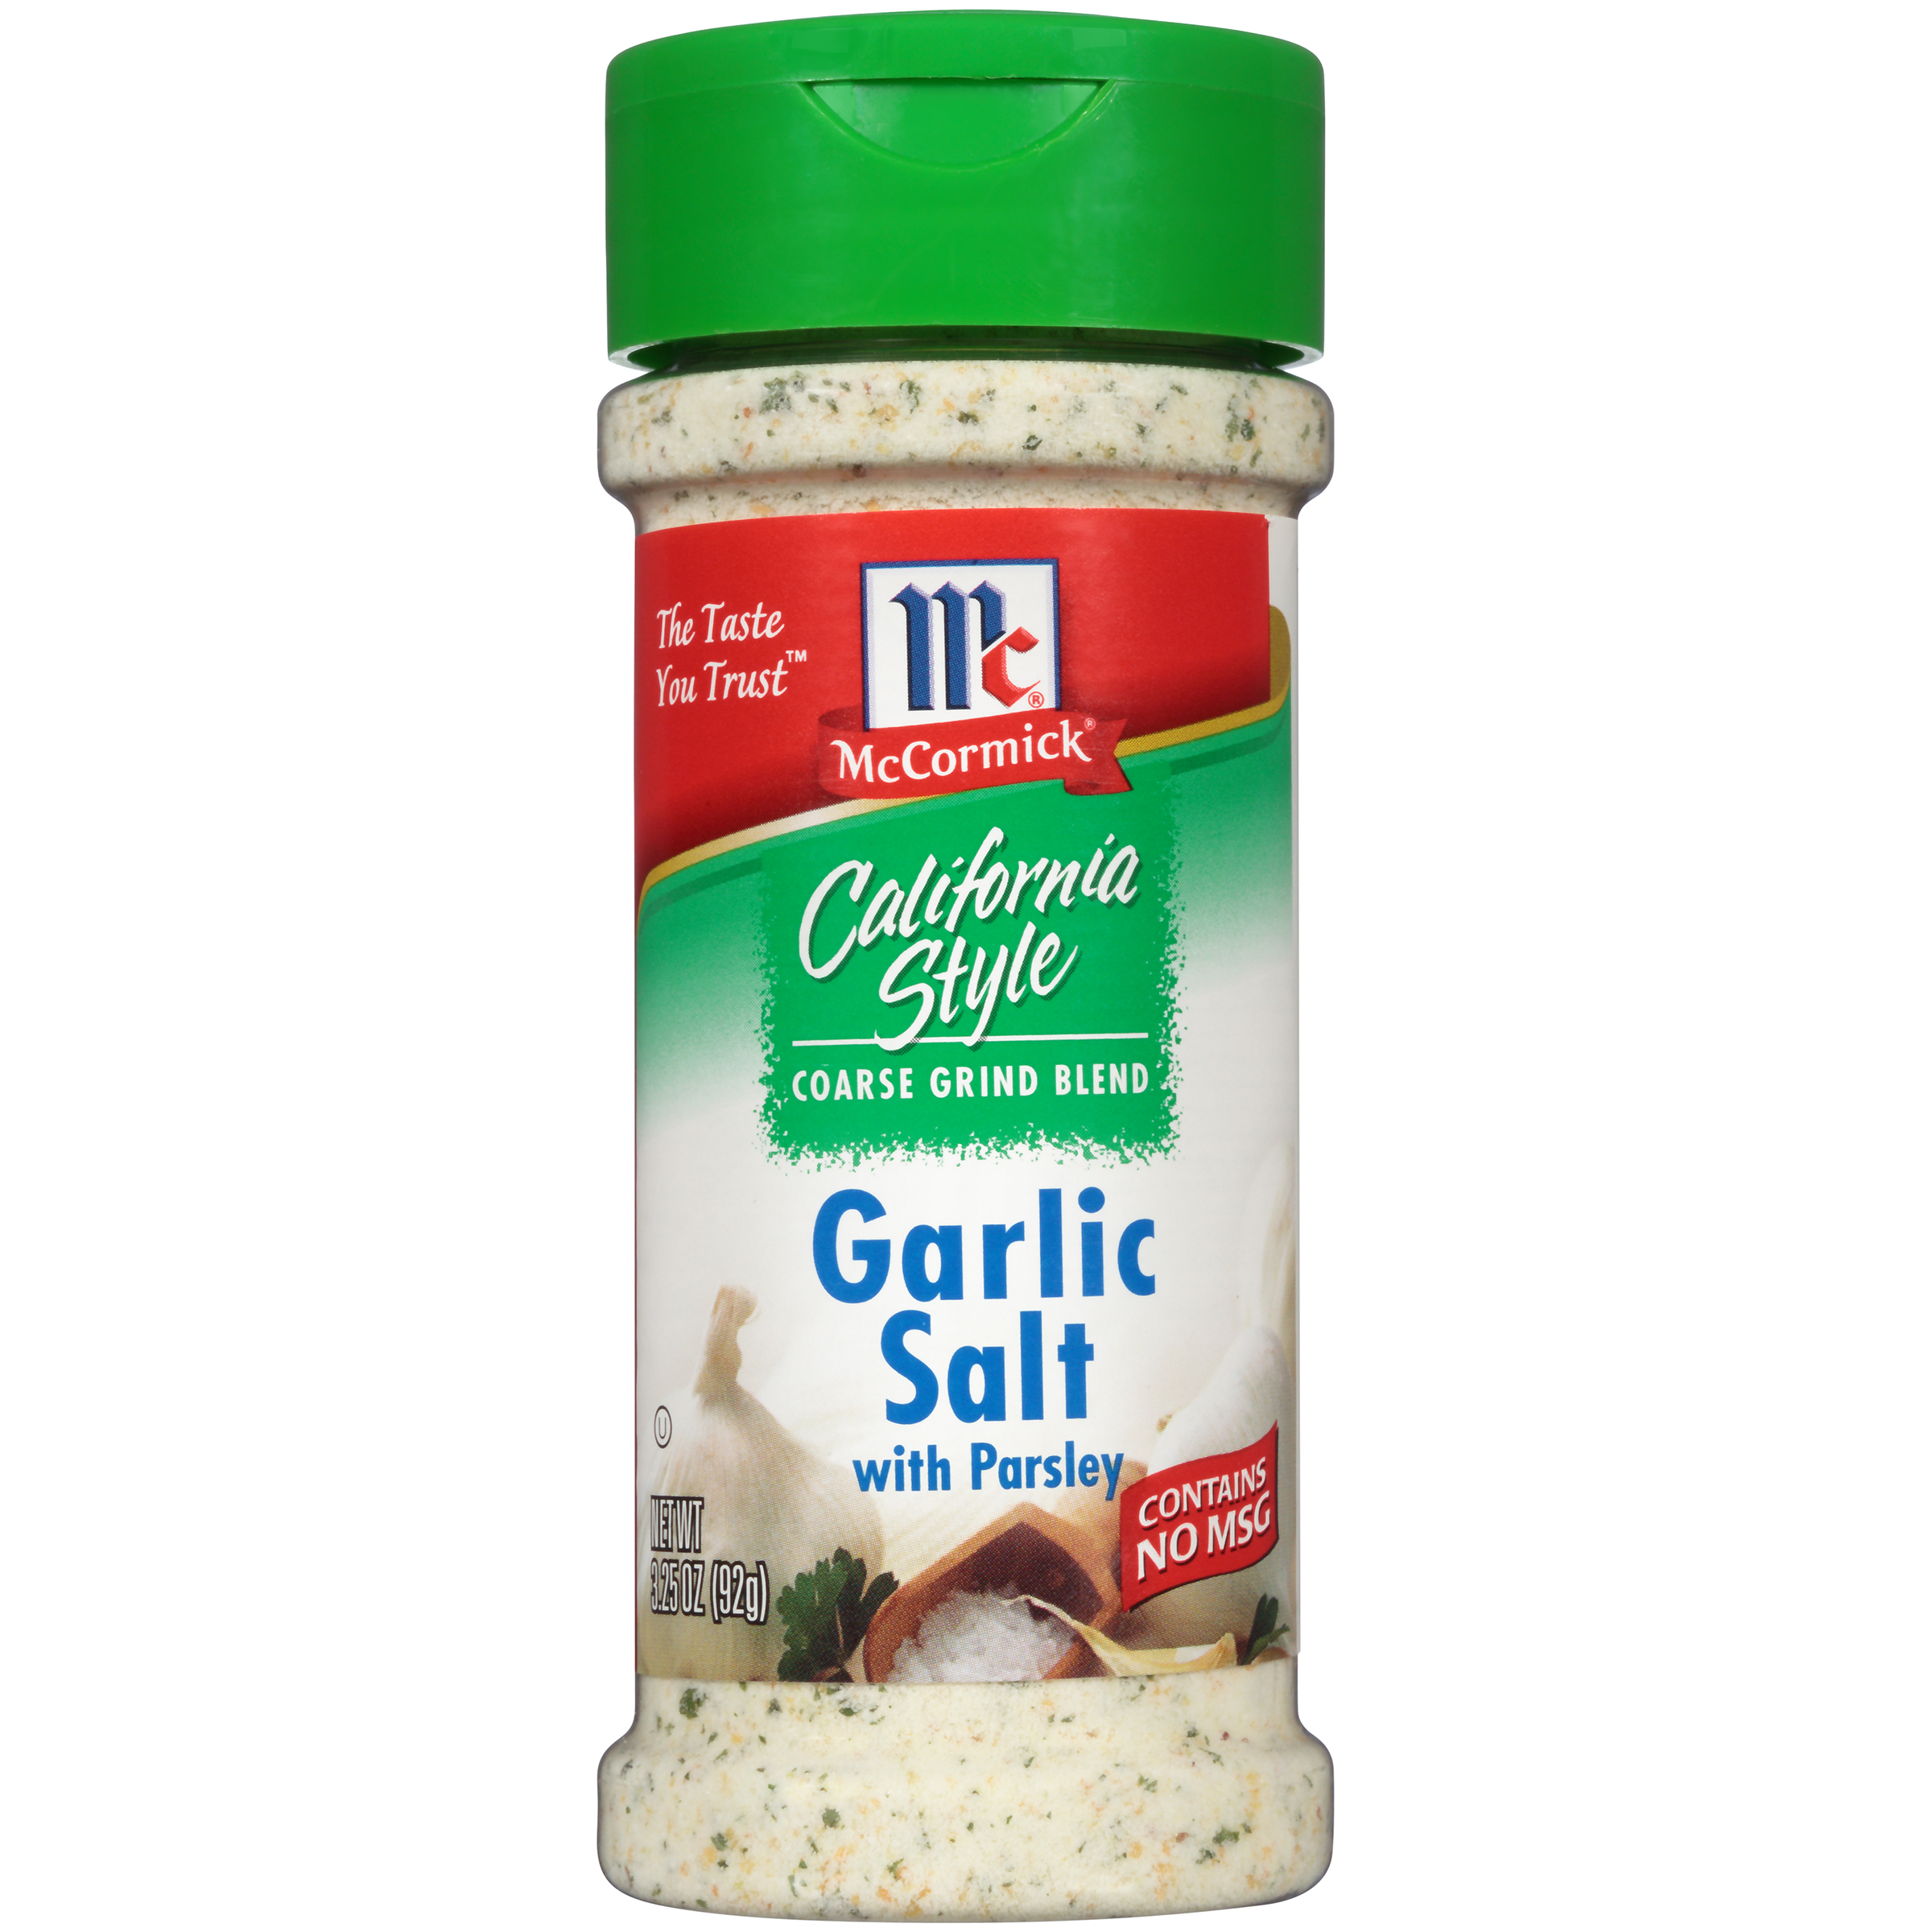 McCormick® California Style Garlic Salt With Parsley Coarse Grind Blend, 3.25 oz